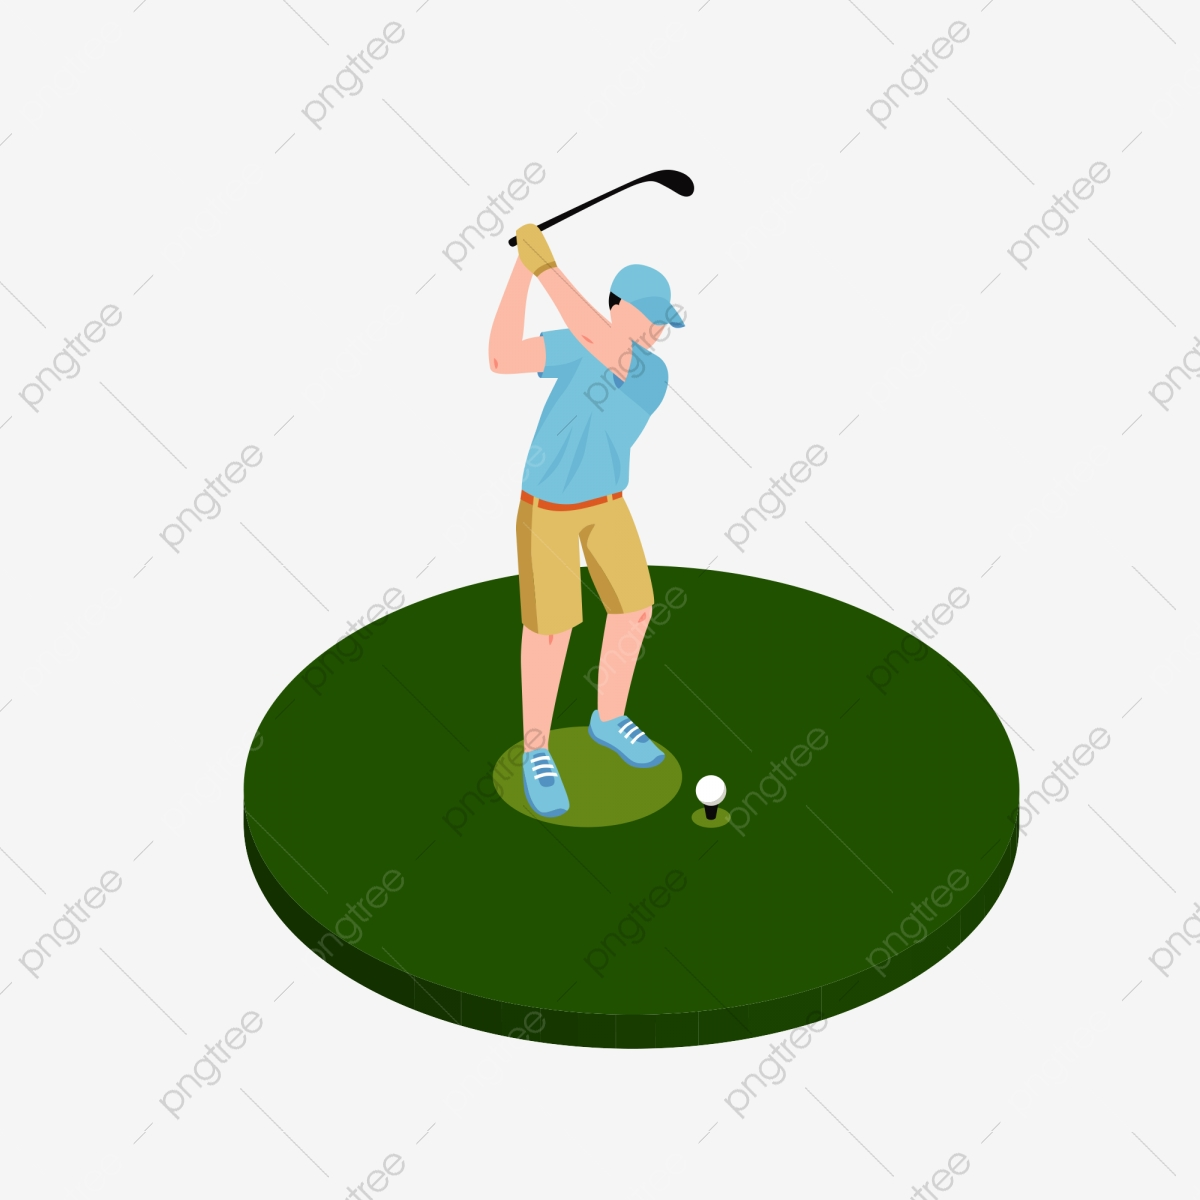 Golf Golf Clipart Movement Png And Vector With Transparent Background For Free Download